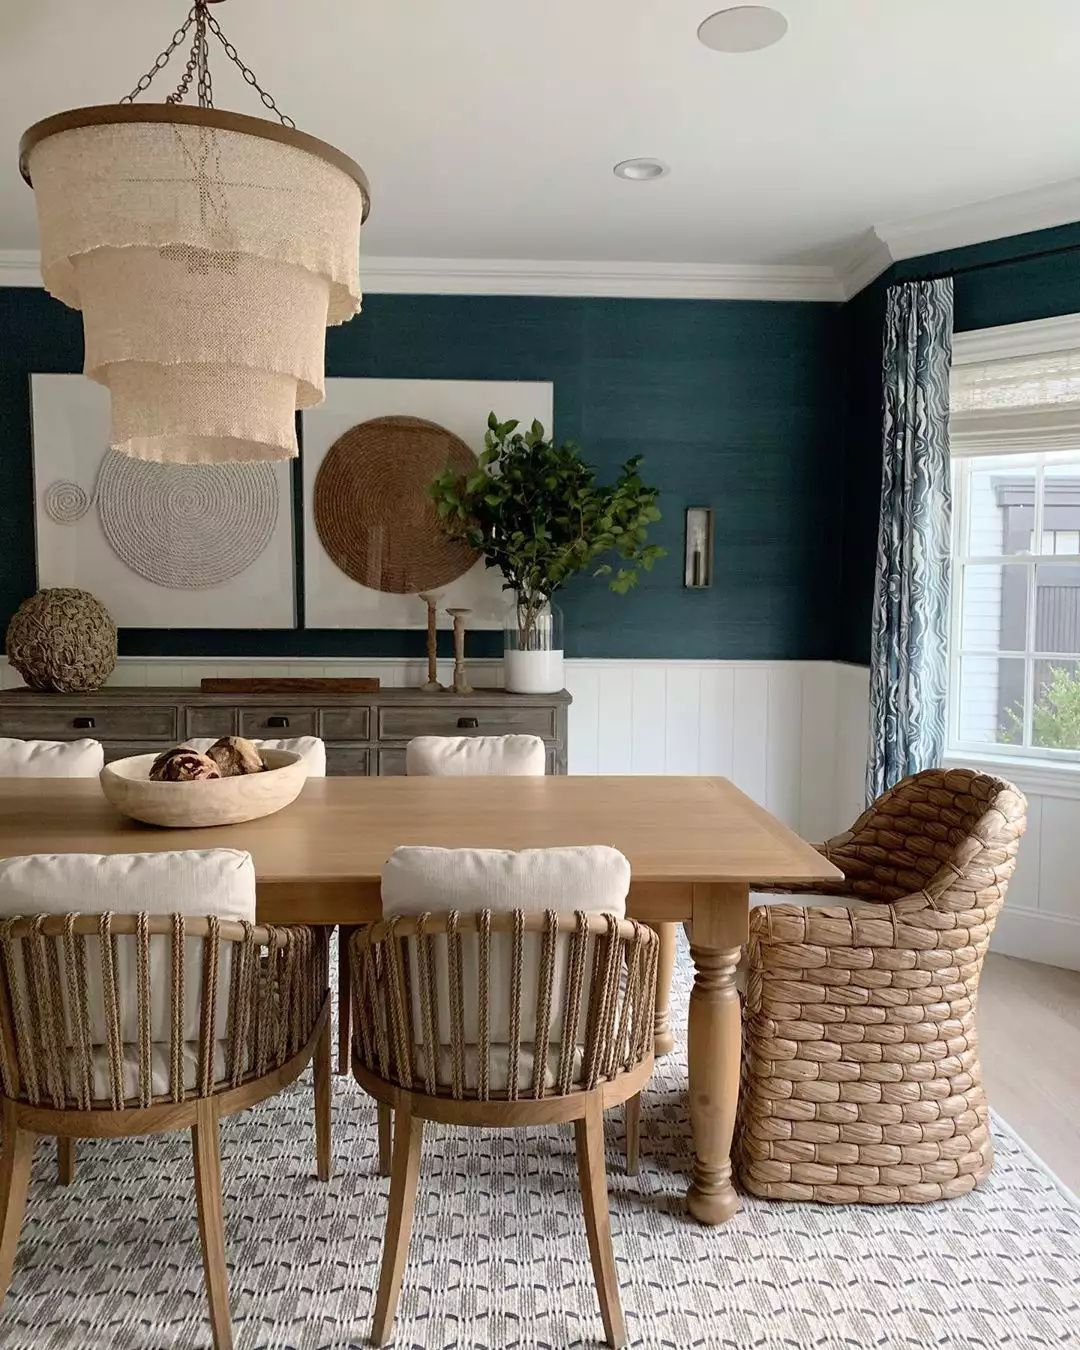 Dining Room Design Trends: 15 Top Influencers Share The Design Trends They're